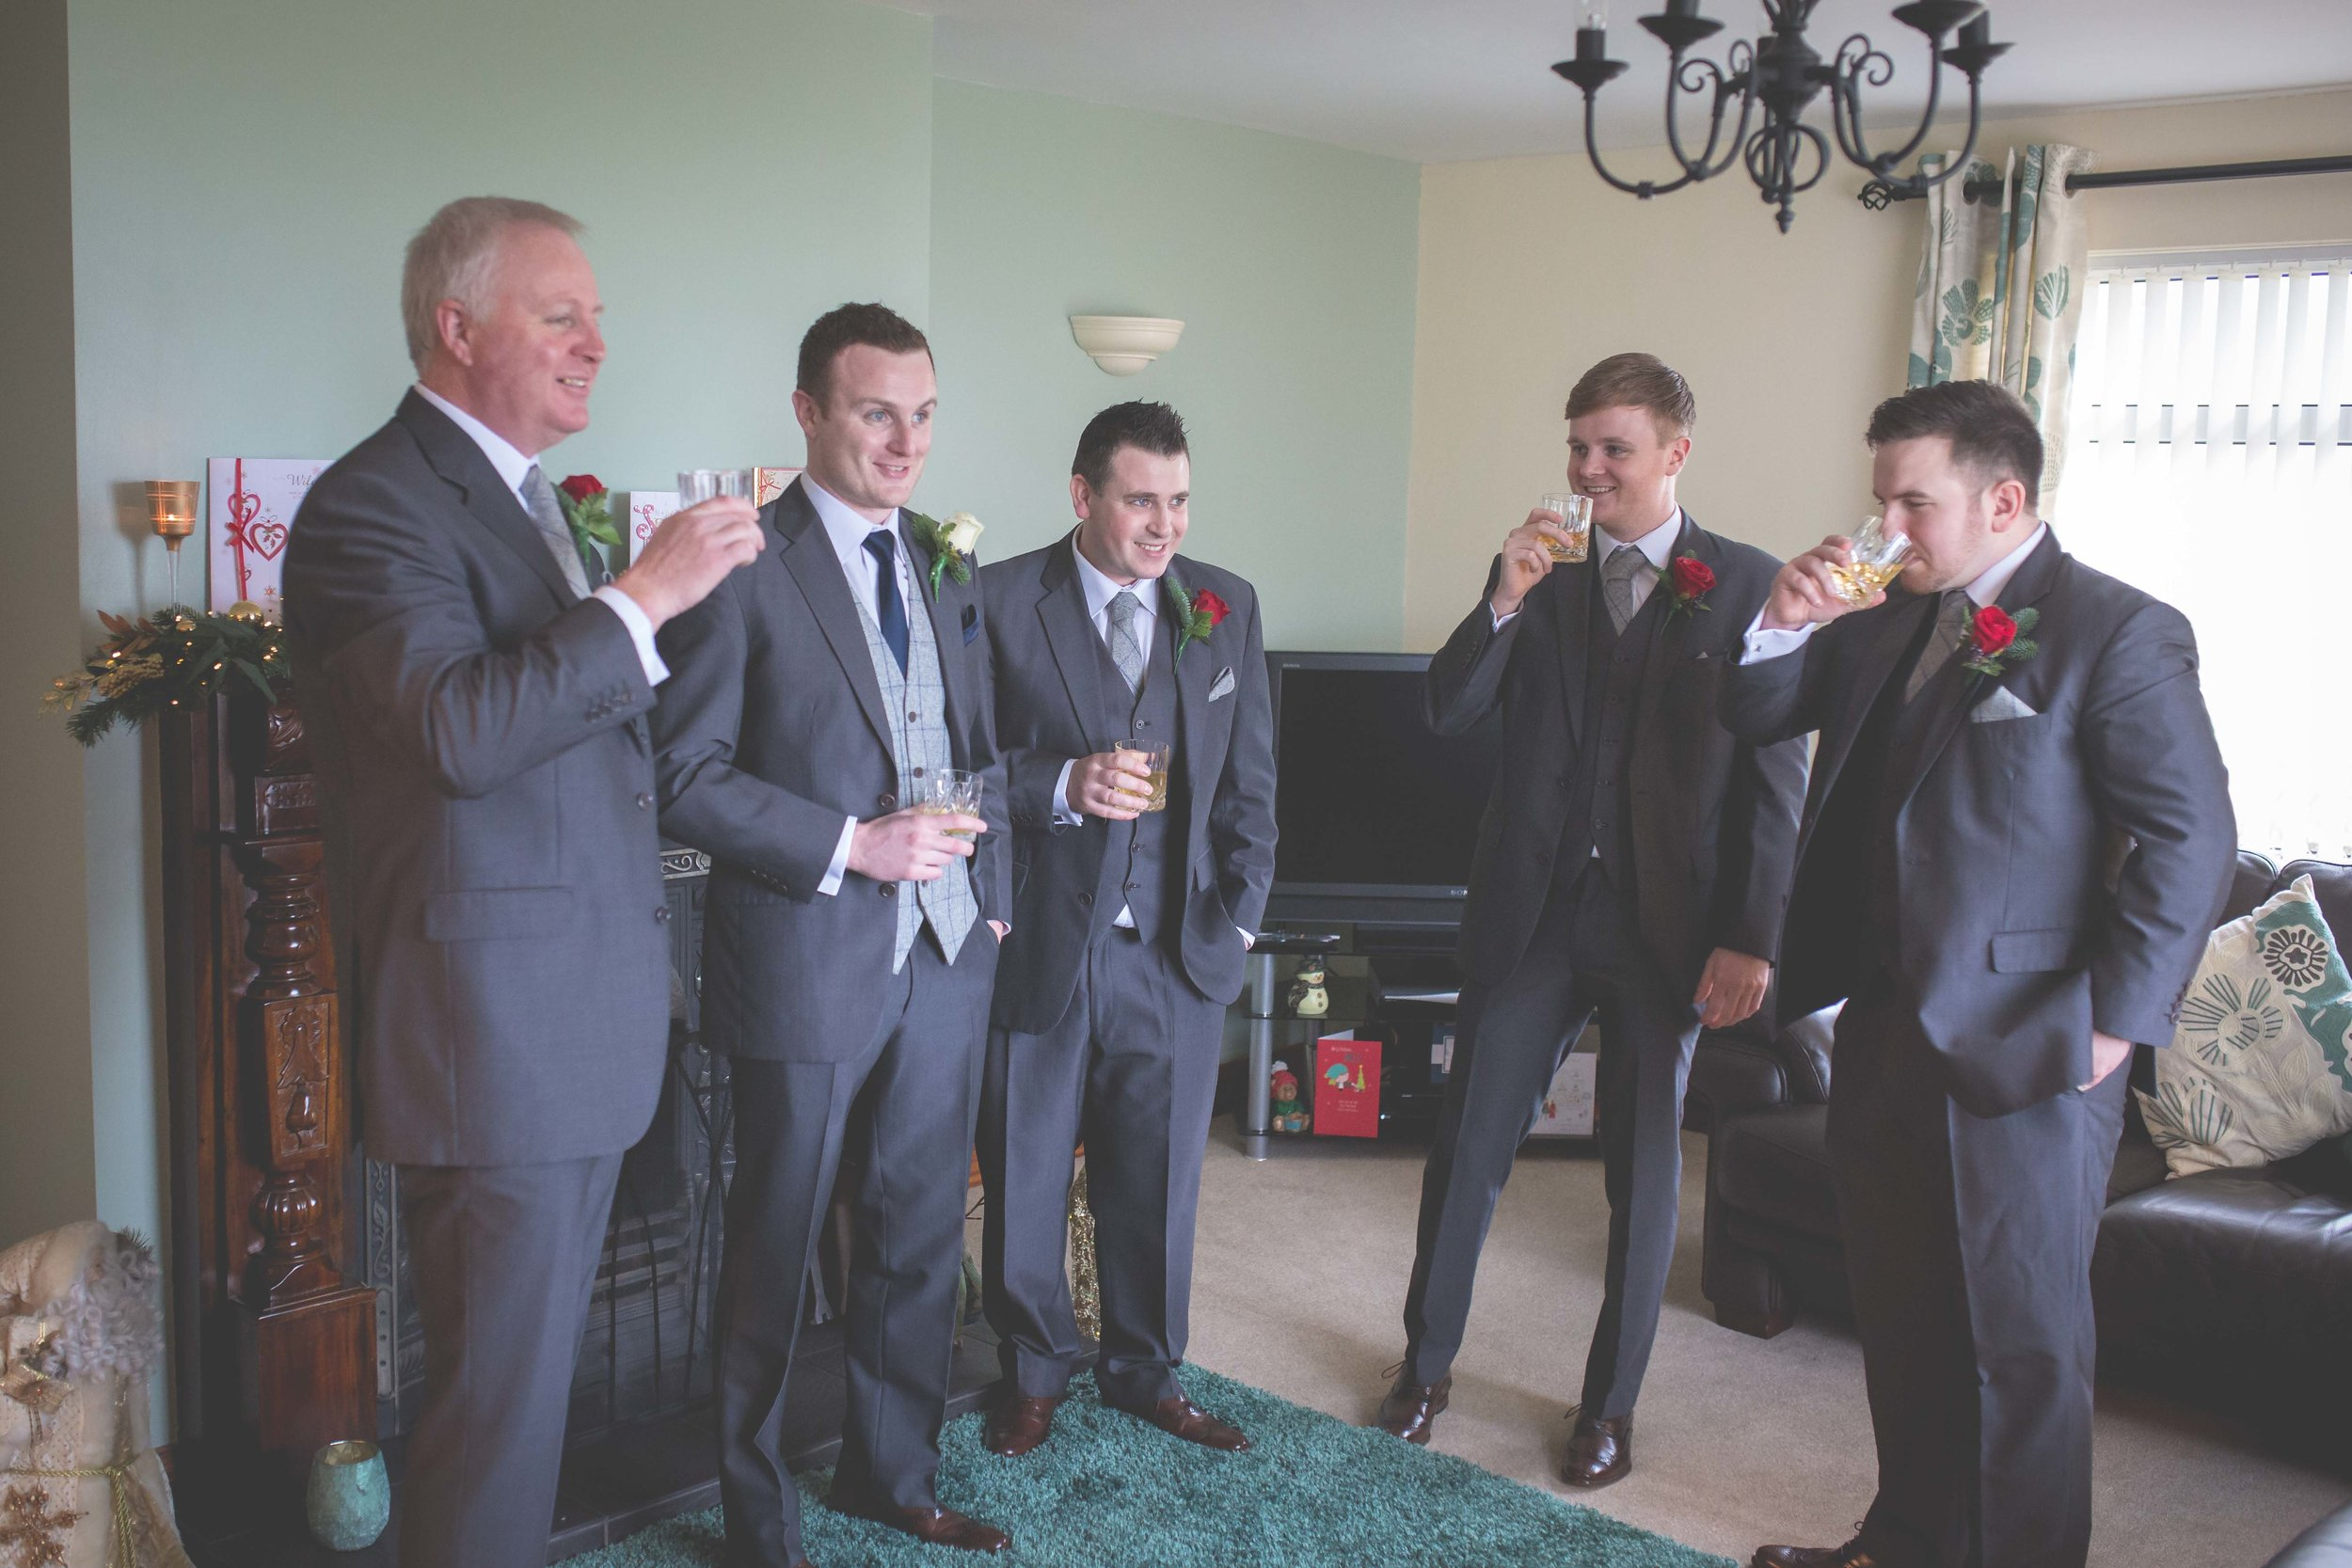 MaryJo_Conor_Mageean_Groom_Prep-25.jpg